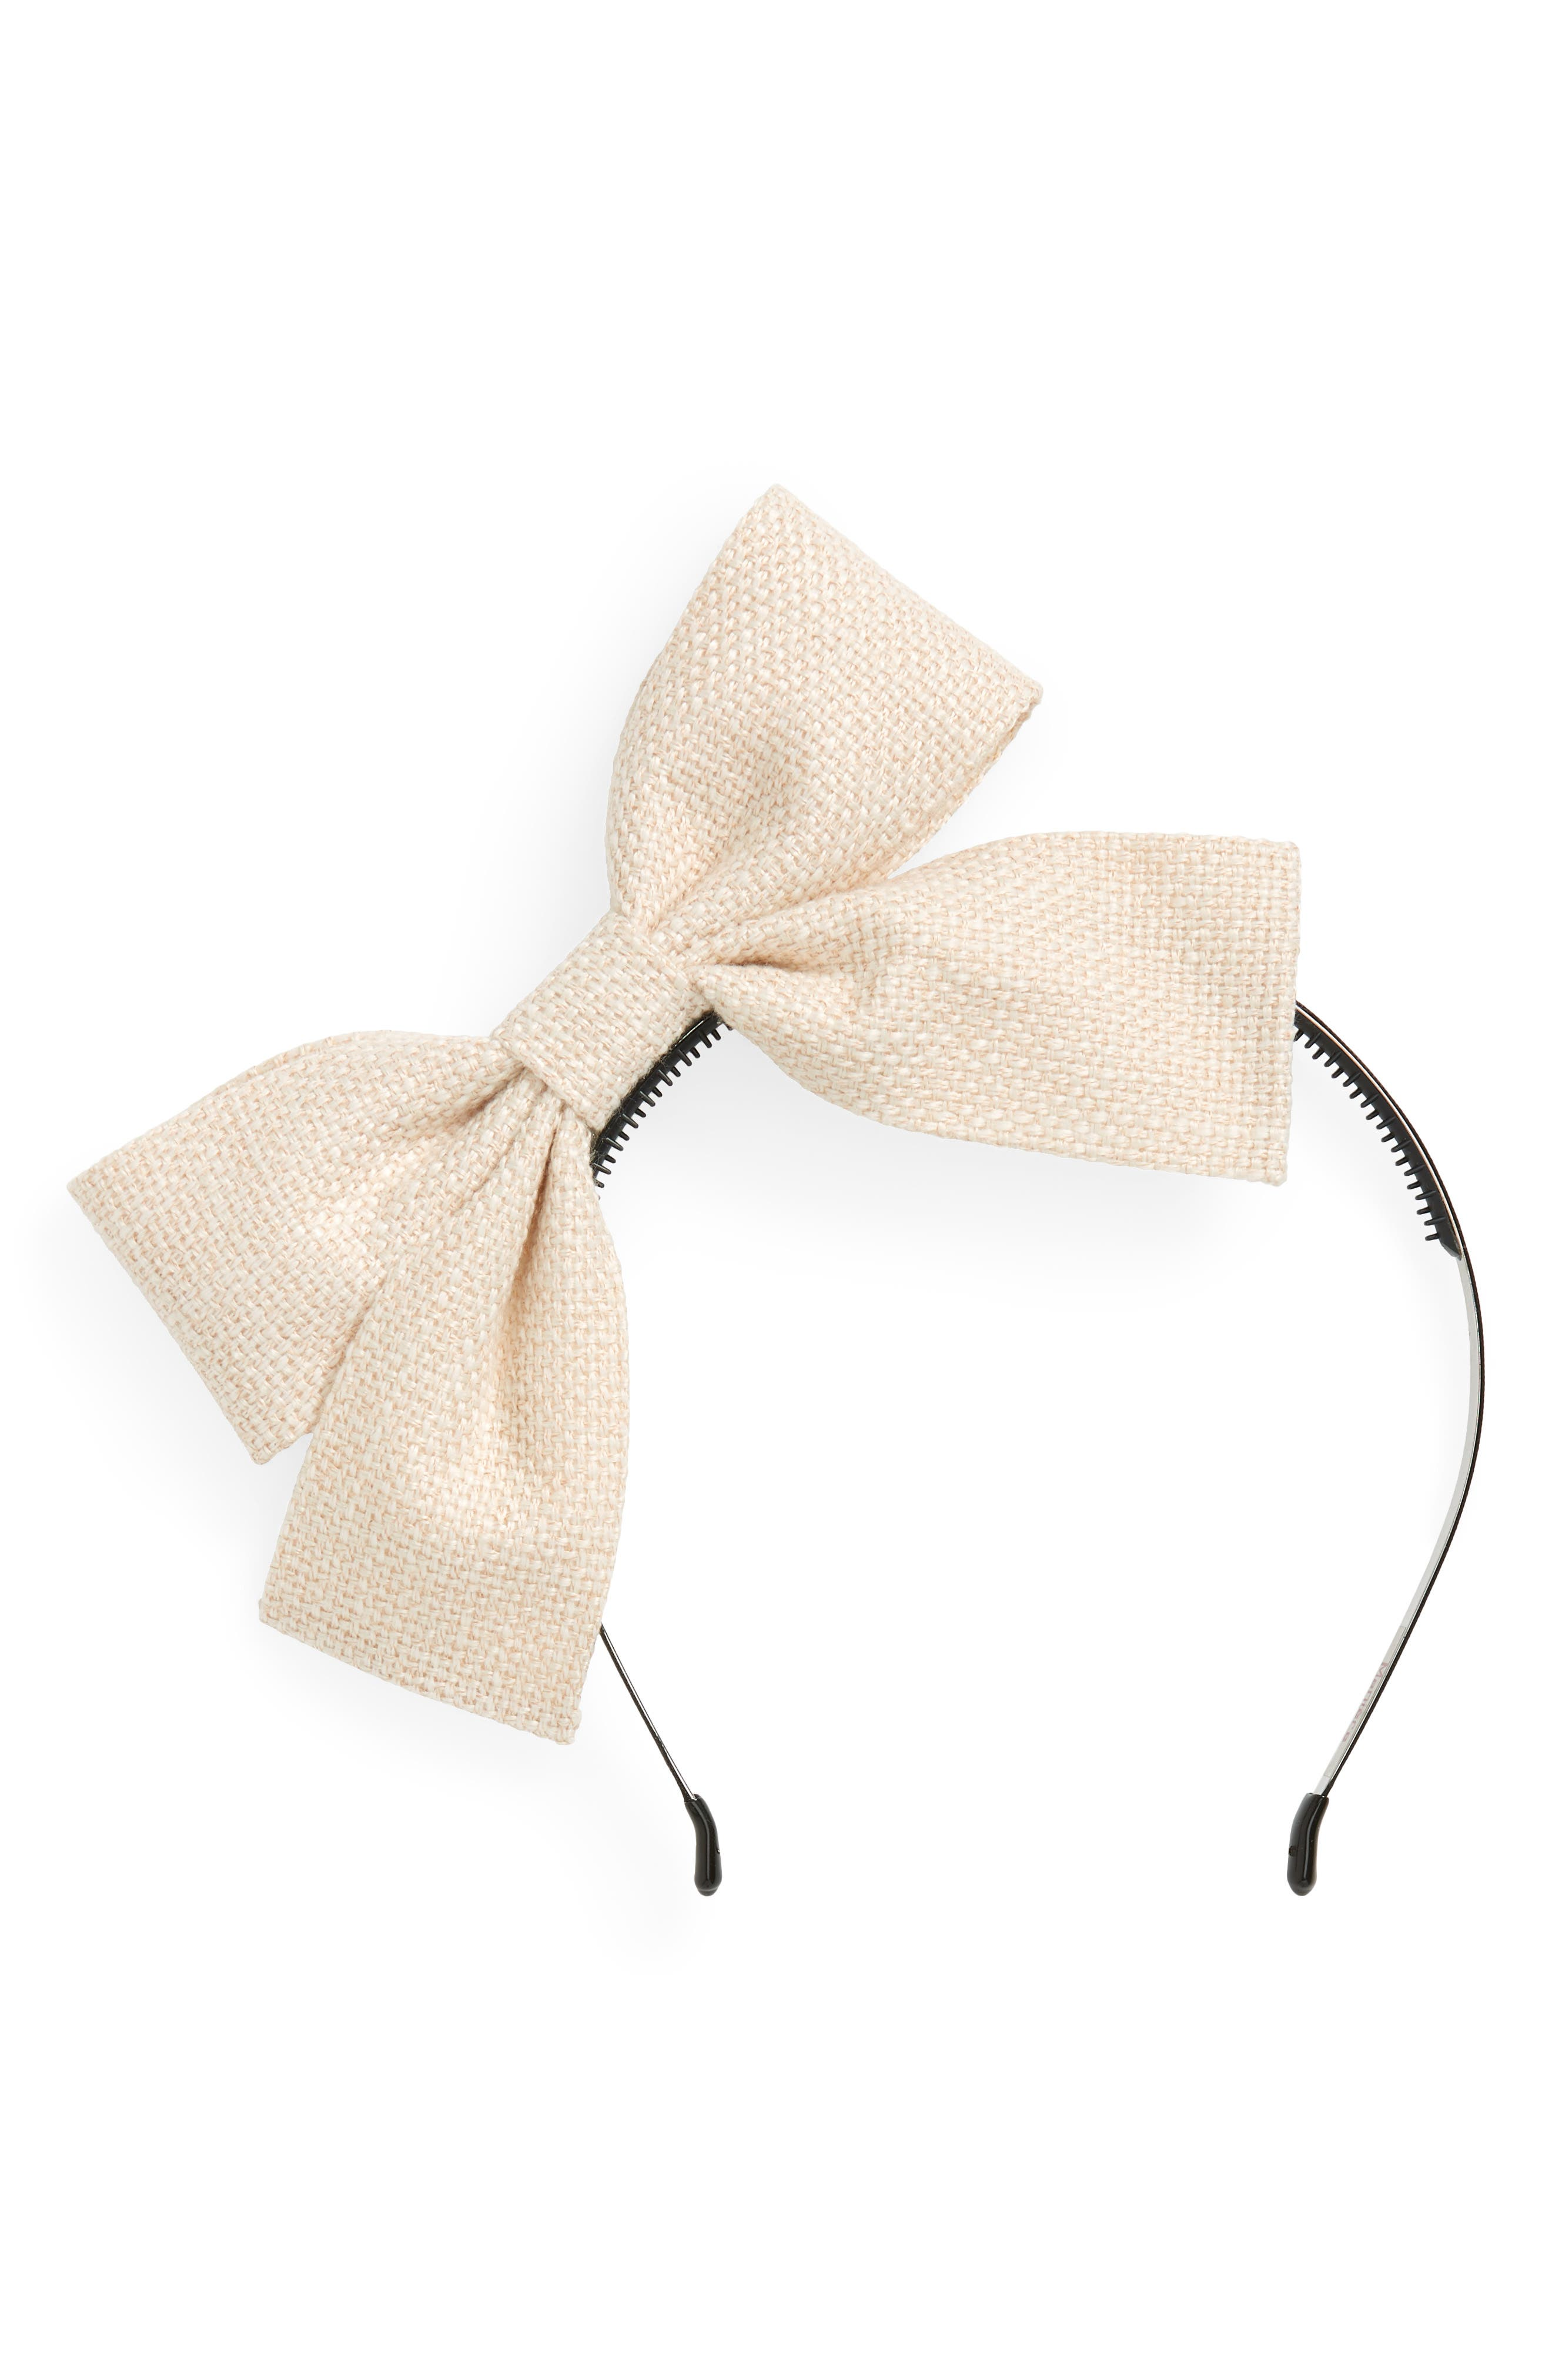 Burlap Bow Headband,                         Main,                         color, 900